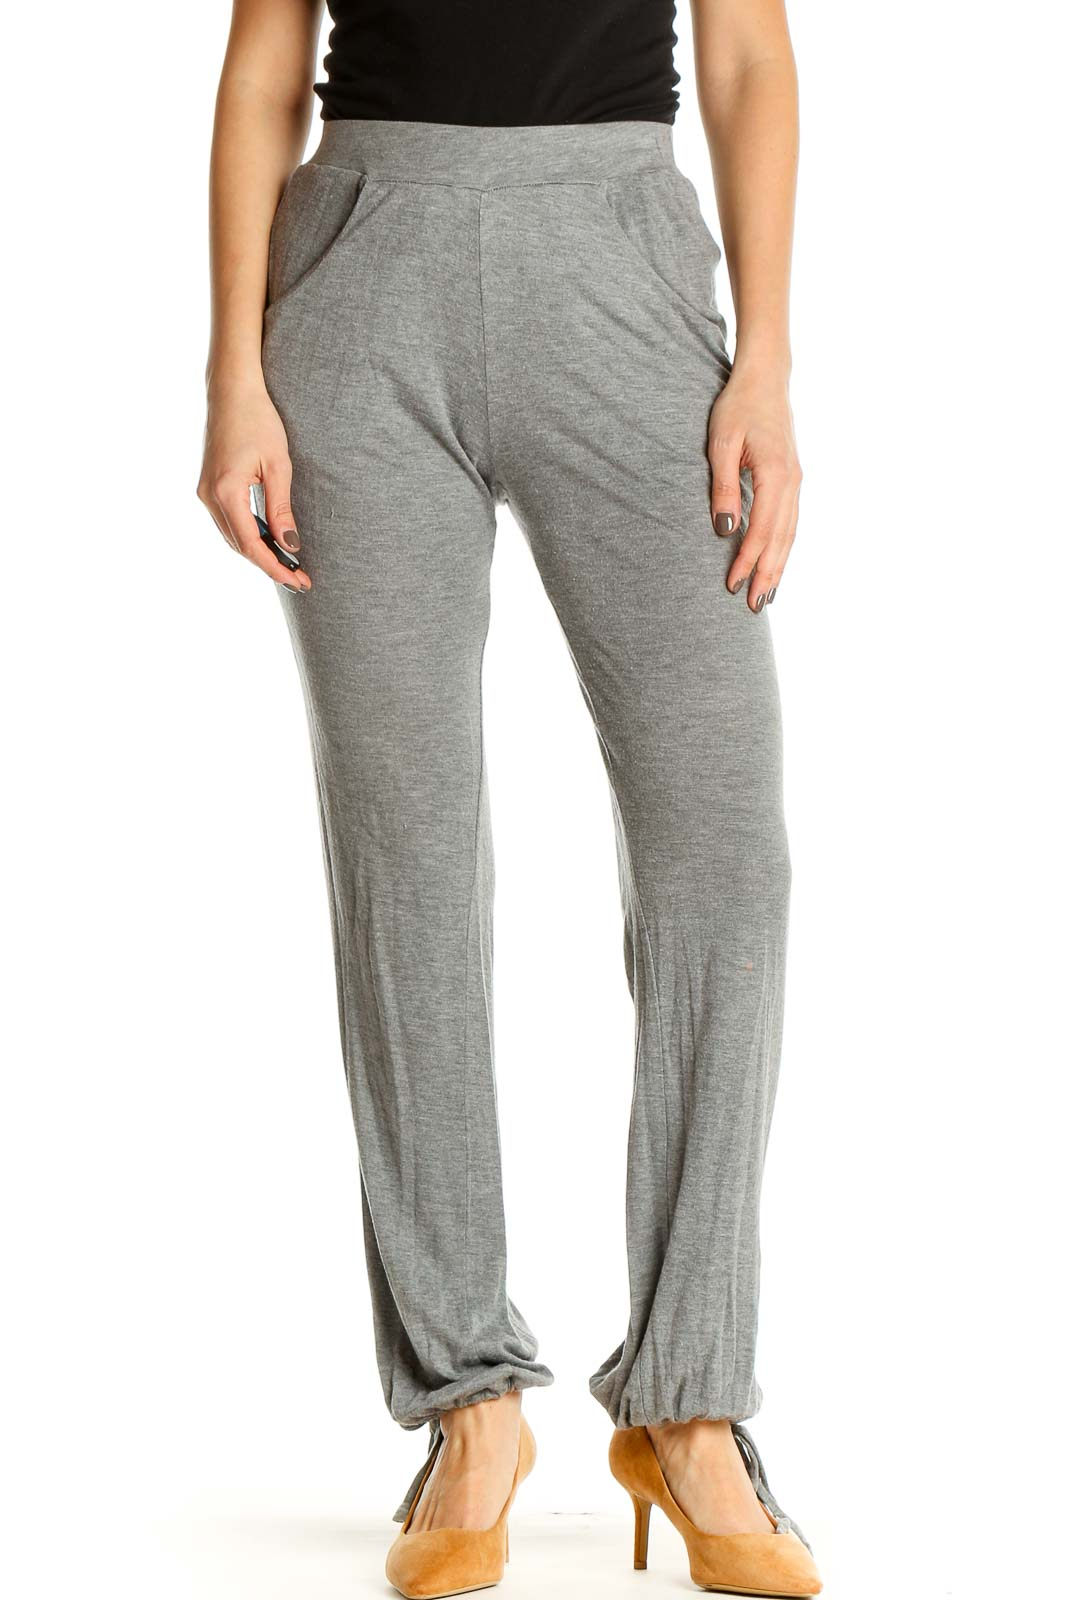 Gray Textured Casual Sweatpants Front